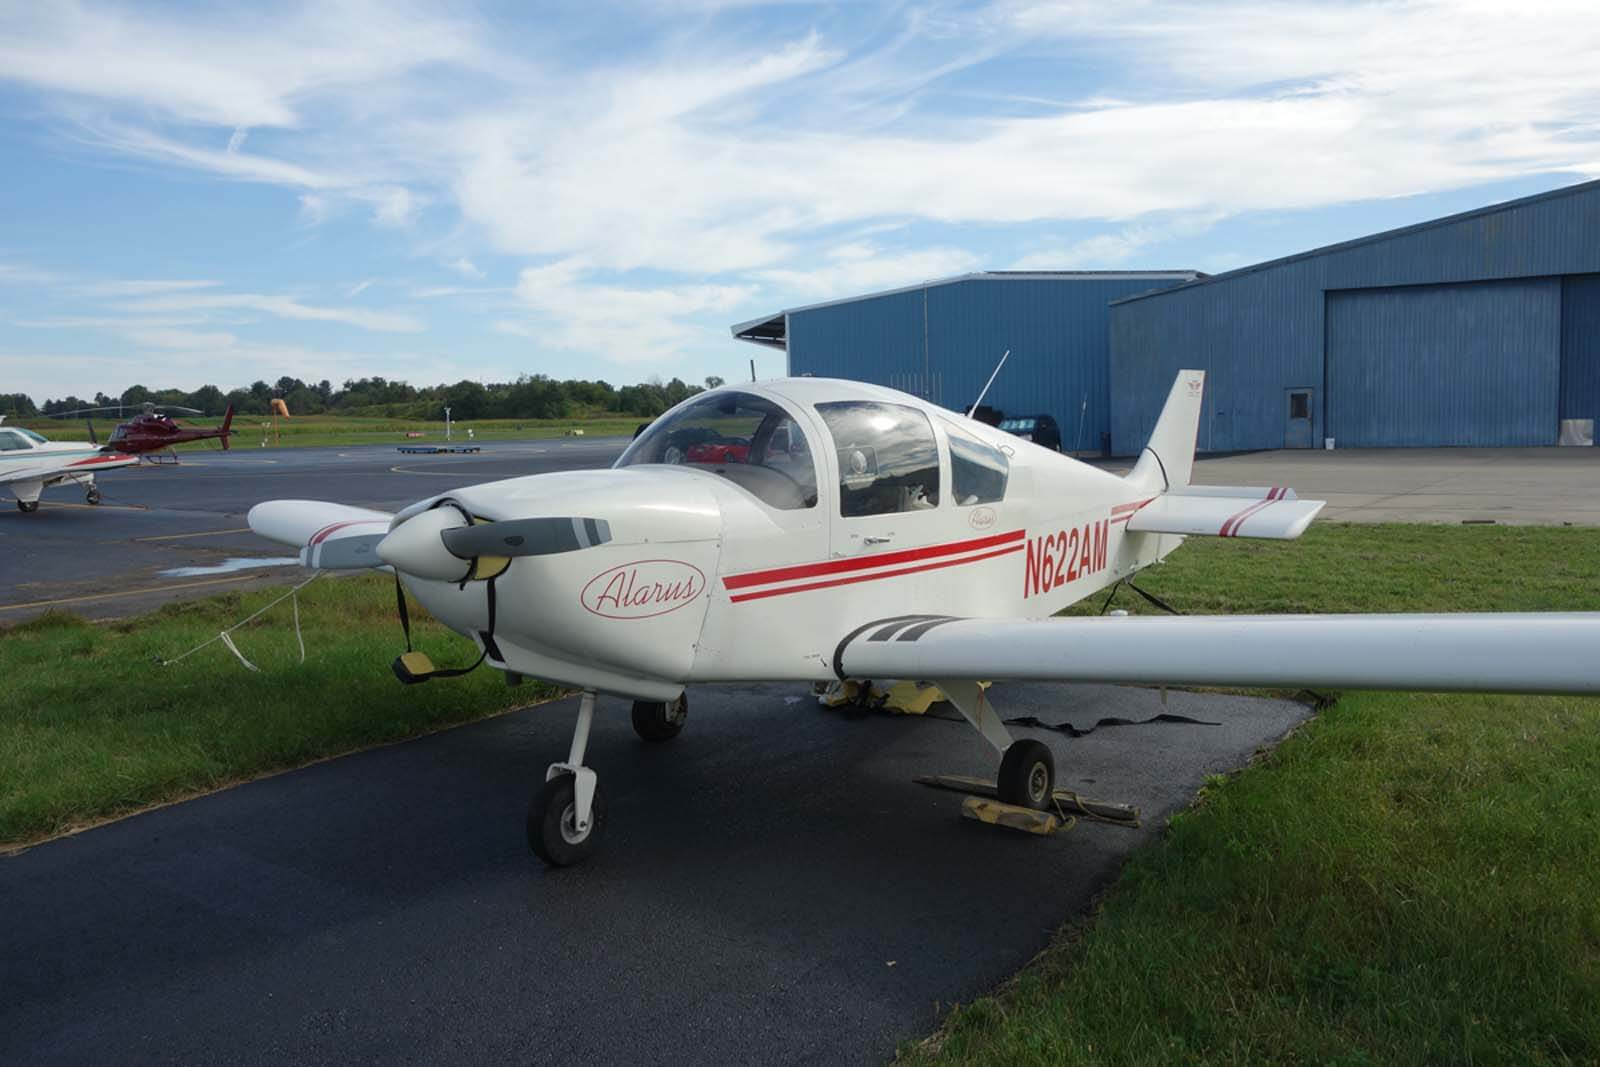 2003 Alarus CH 2000 – FOR SALE at Princeton Airport - Contact Ken Nierenberg at 609-731-4628